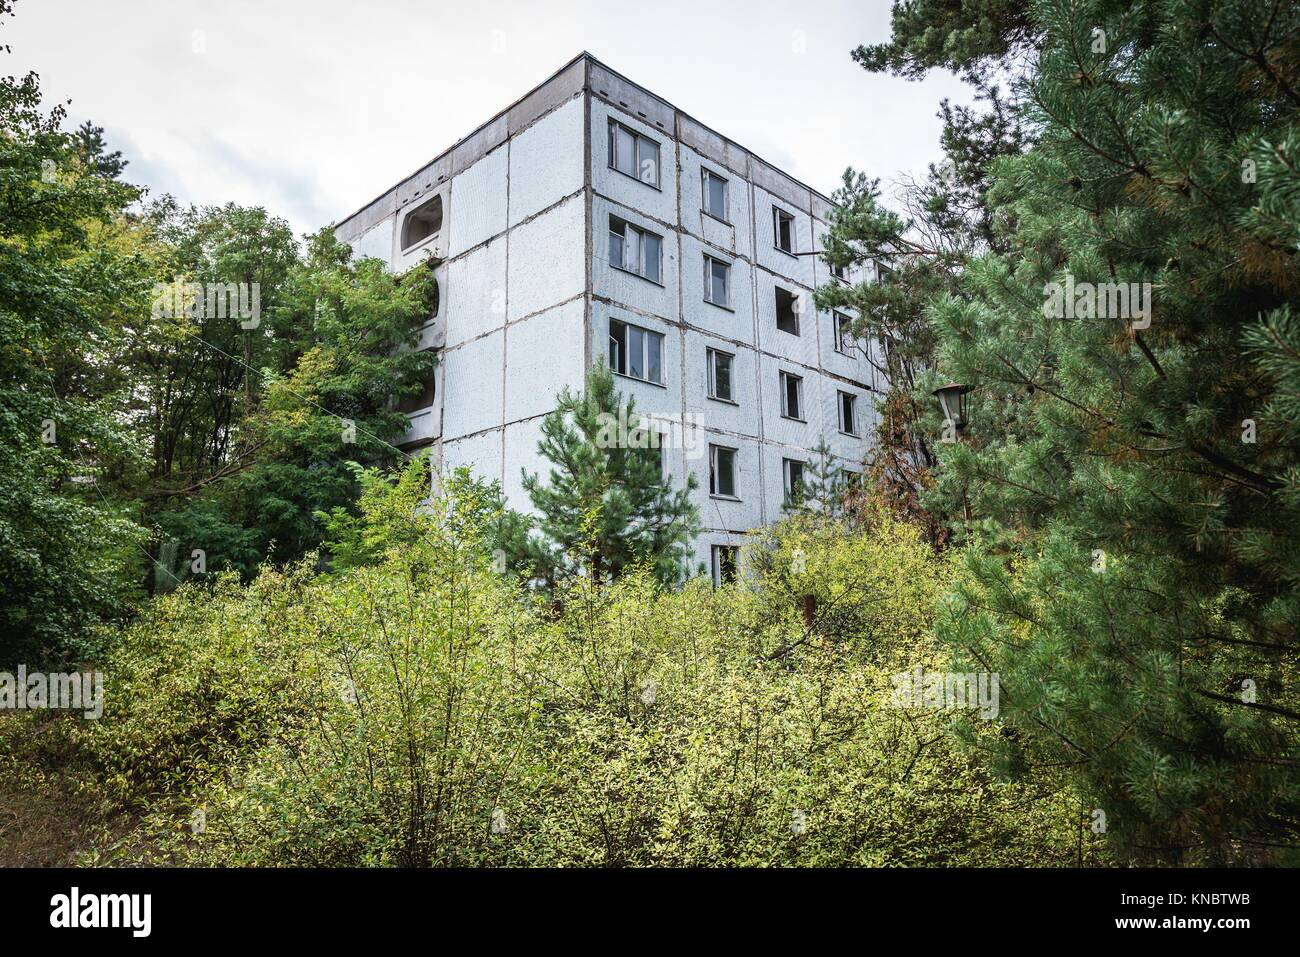 Block of flats in Pripyat ghost city of Chernobyl Nuclear Power Plant Zone of Alienation around nuclear reactor - Stock Image